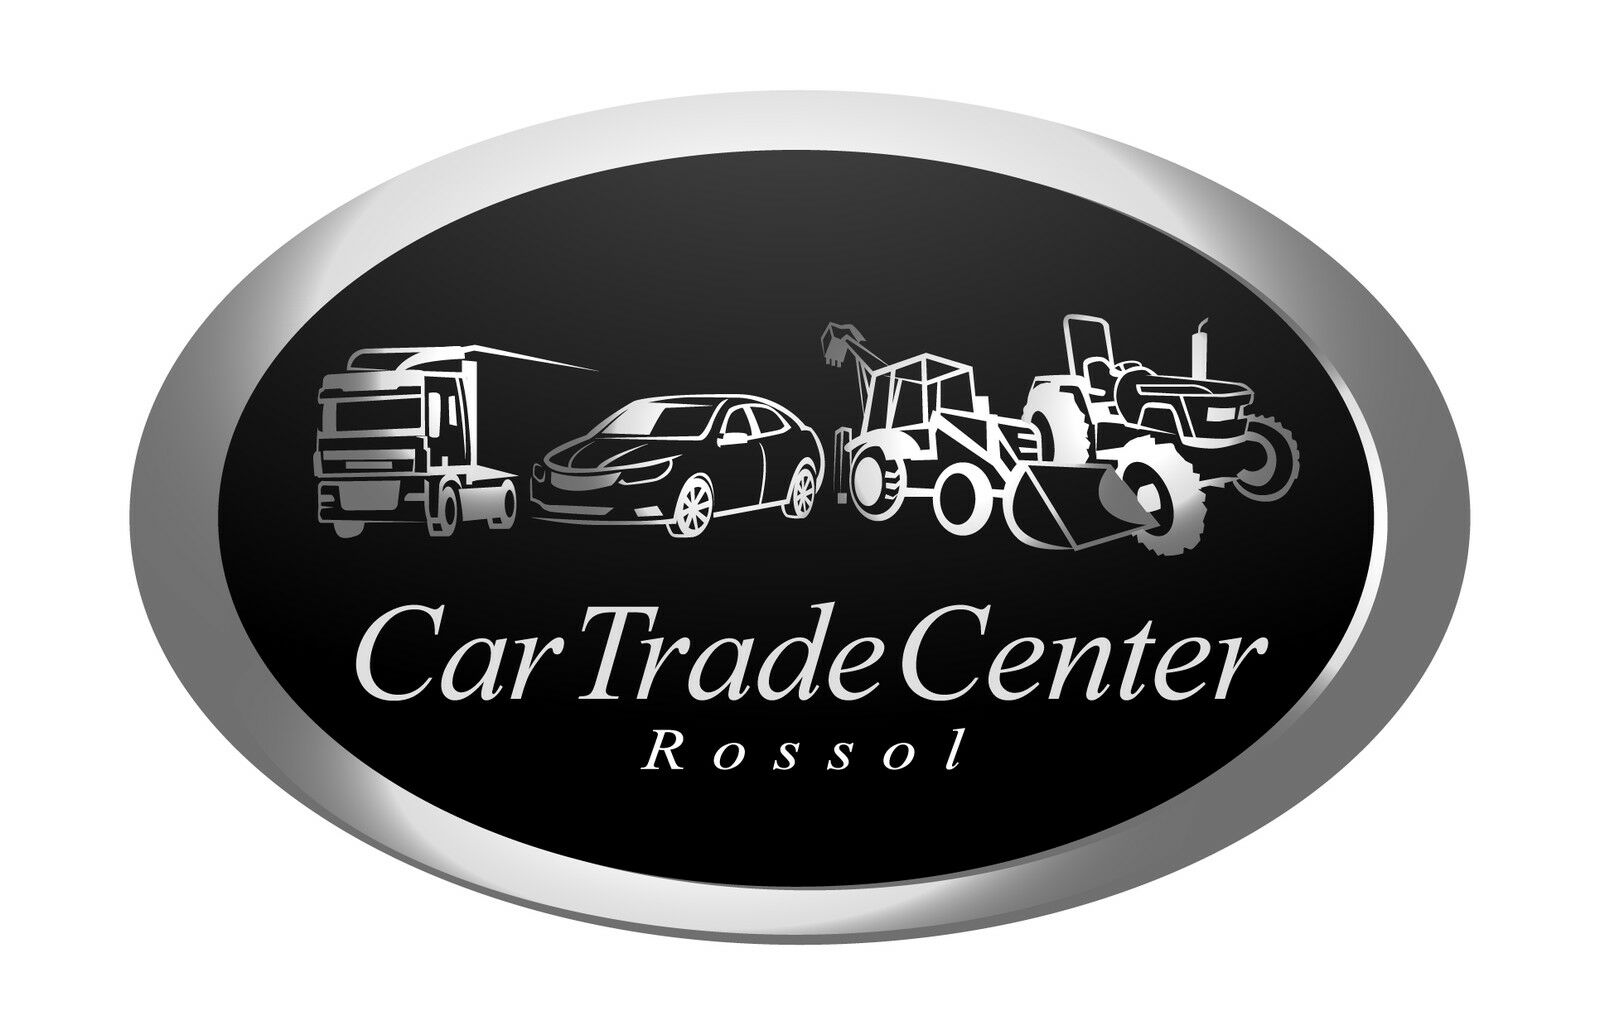 CarTradeCenterRossol